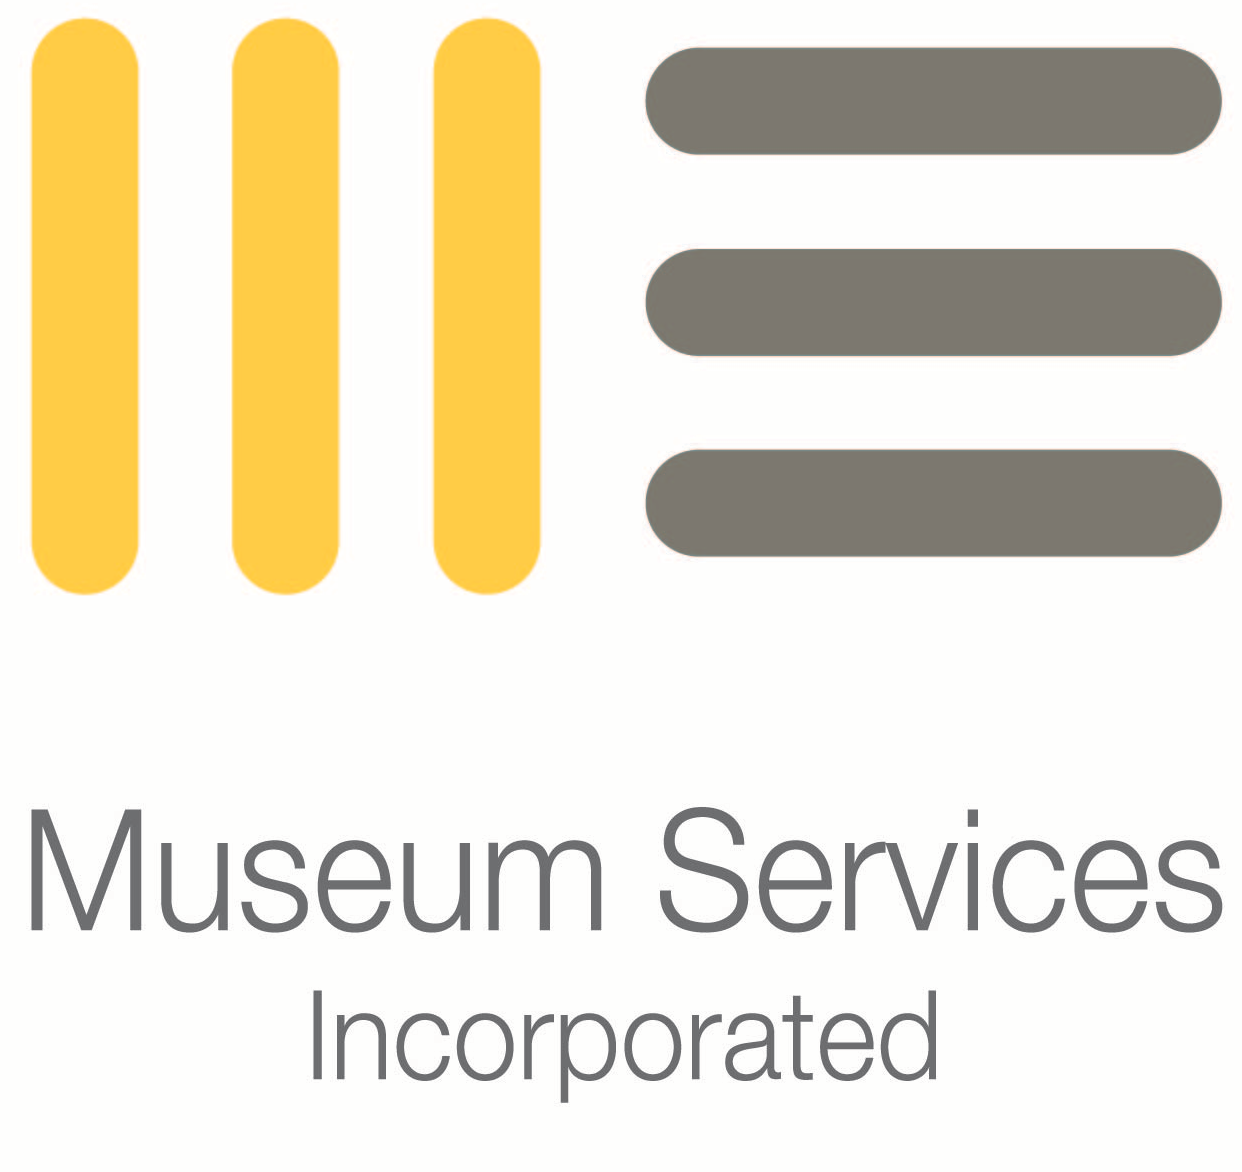 Museum Services Inc. | Fine Art Services | Installation, Shipping, Framing, Custom Fabrication, Secure Storage, Conservation